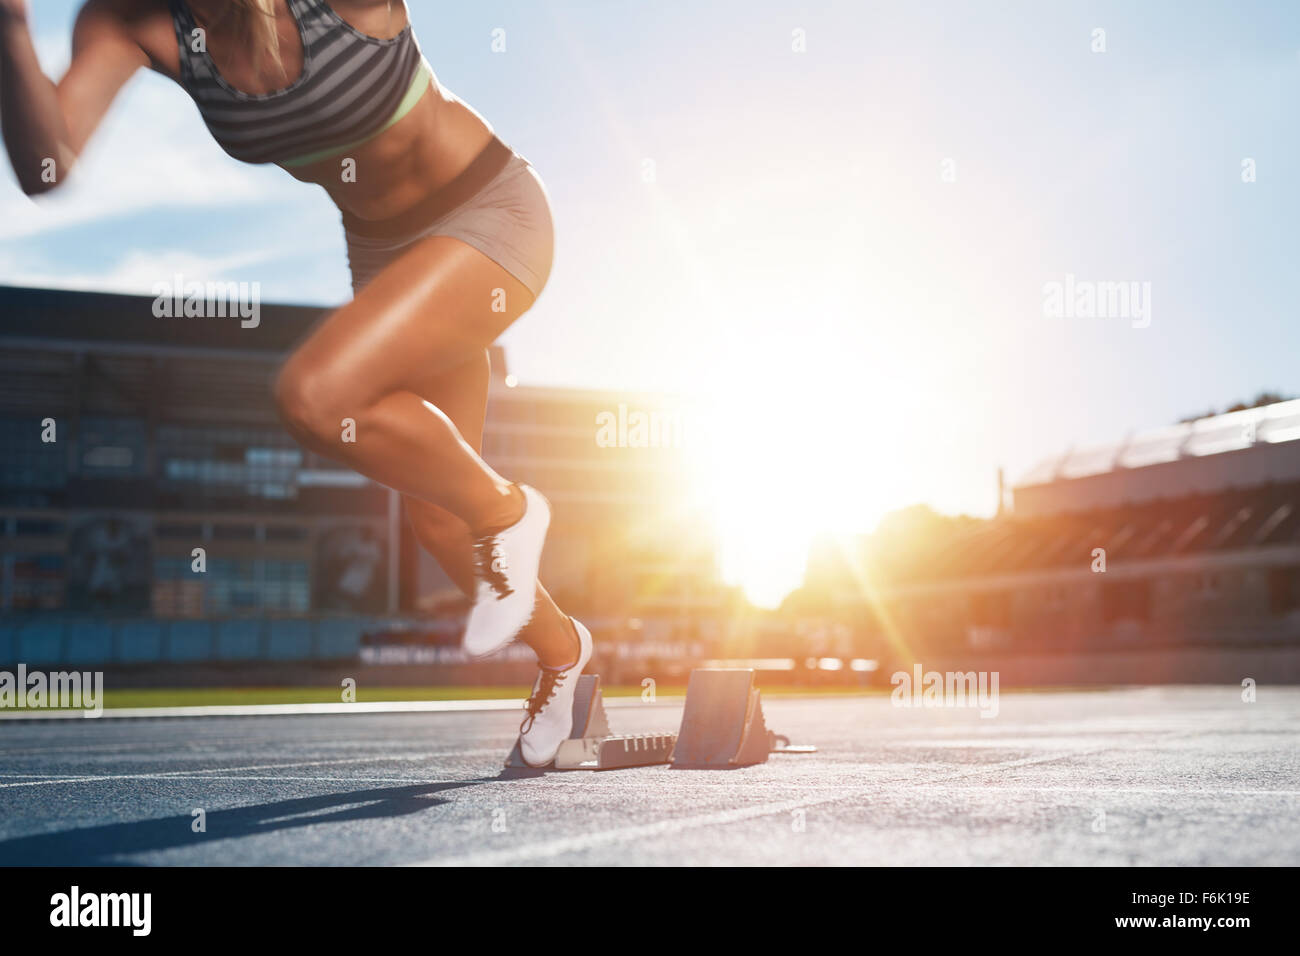 Cropped shot of young female athlete launching off the start line in a race. Female runner started the sprint from Stock Photo